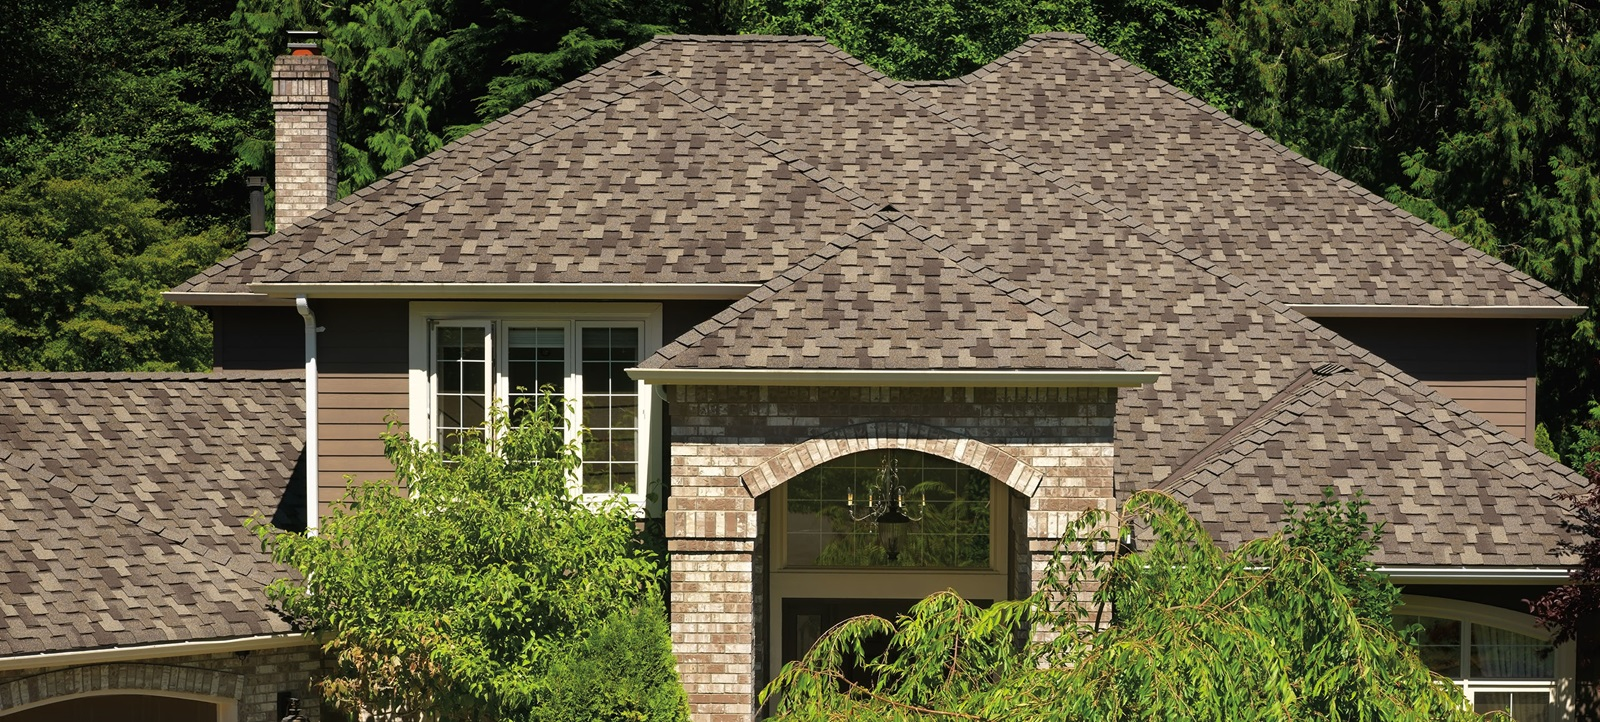 Grand Canyon Premium Murray S Roofing And Siding Inc